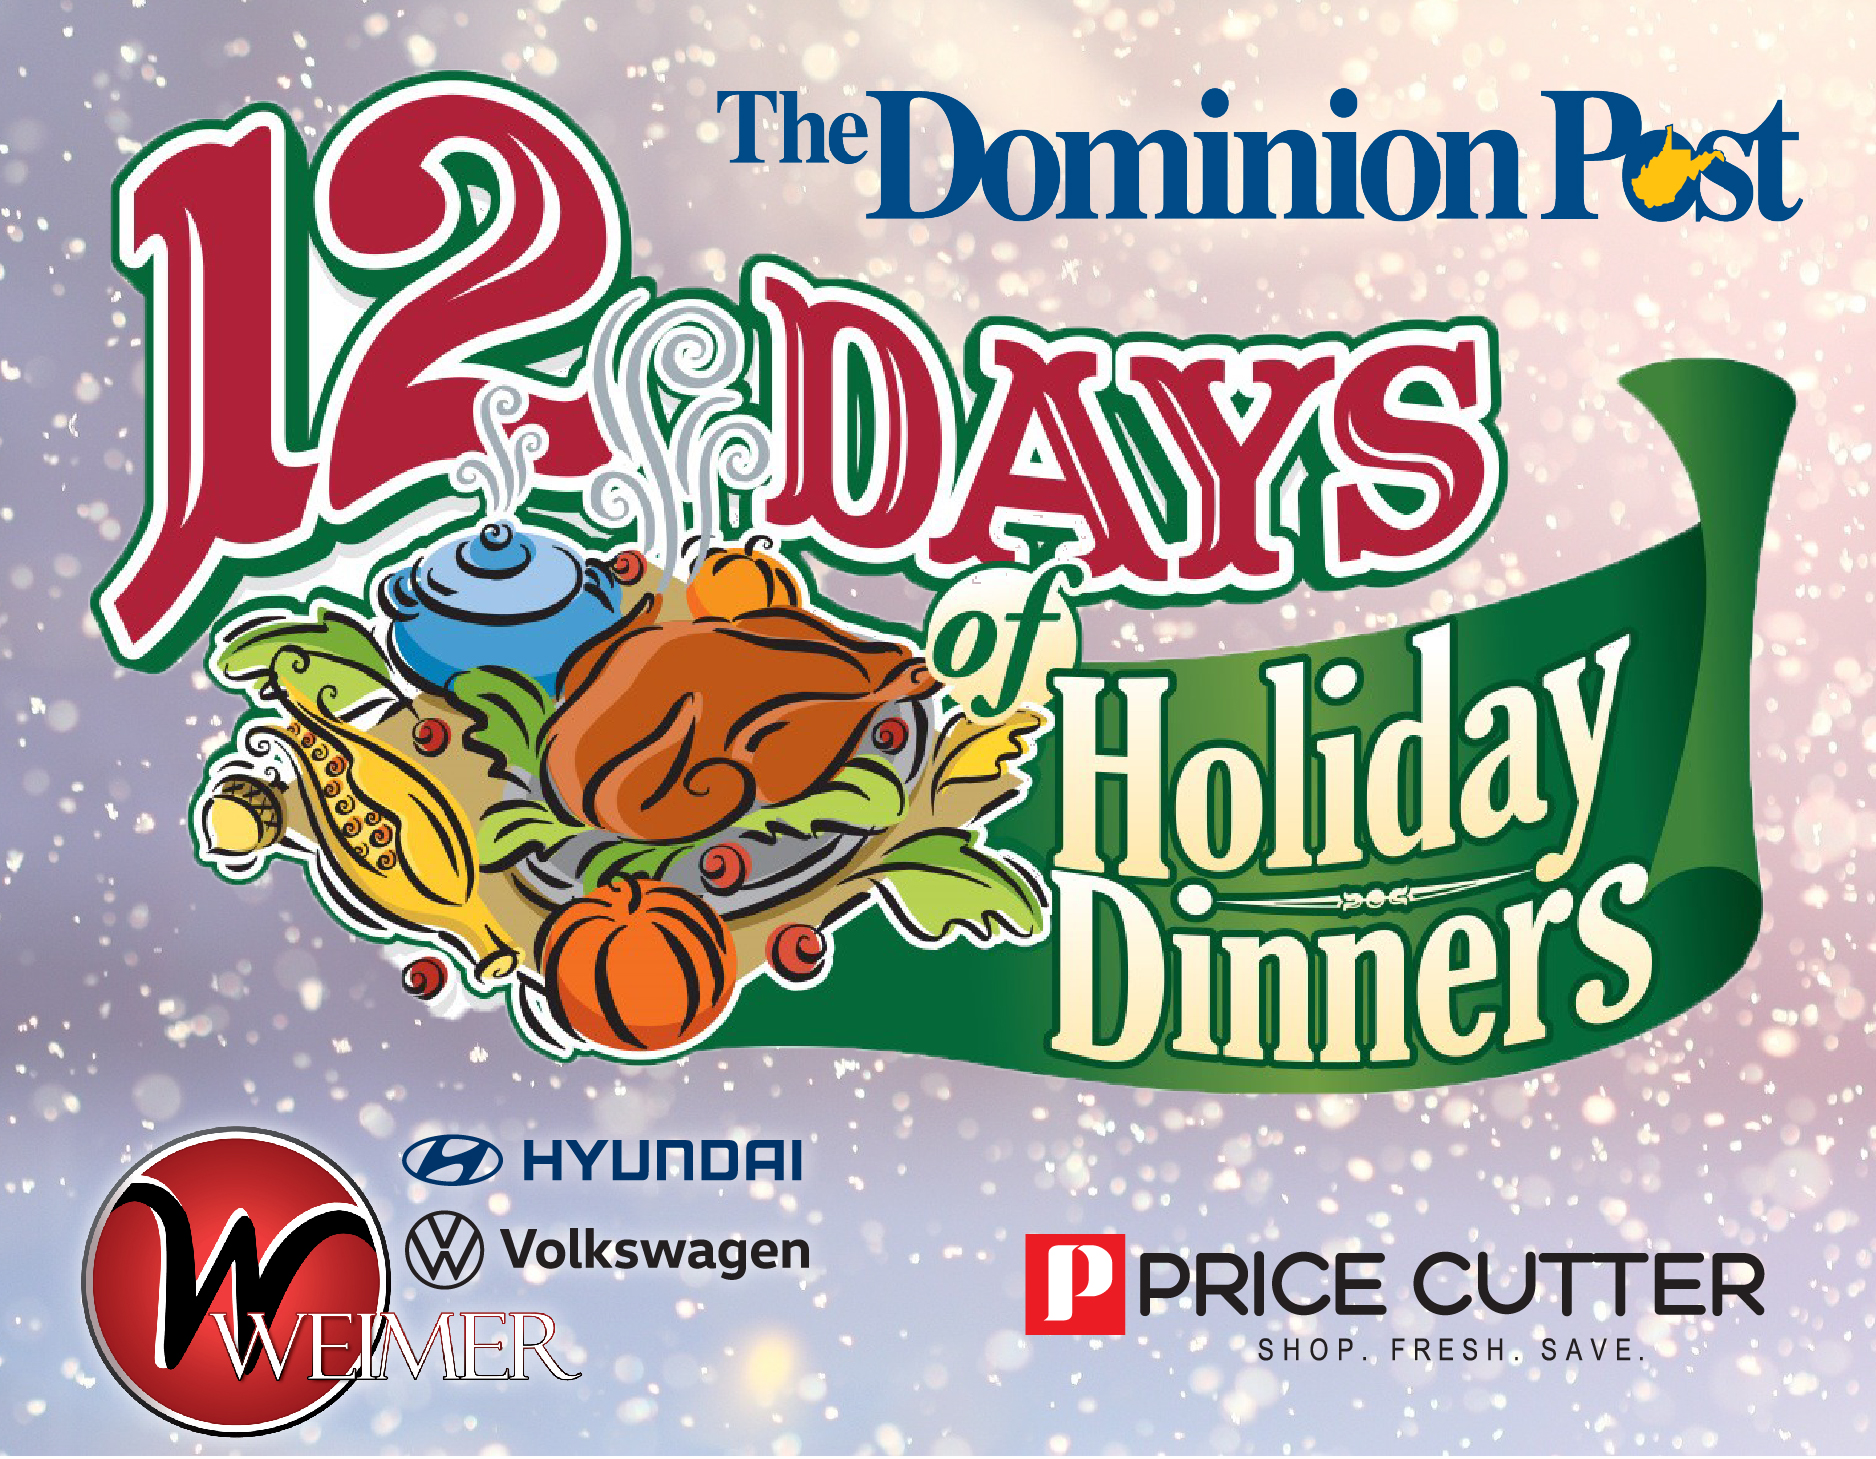 12 days of holiday dinners